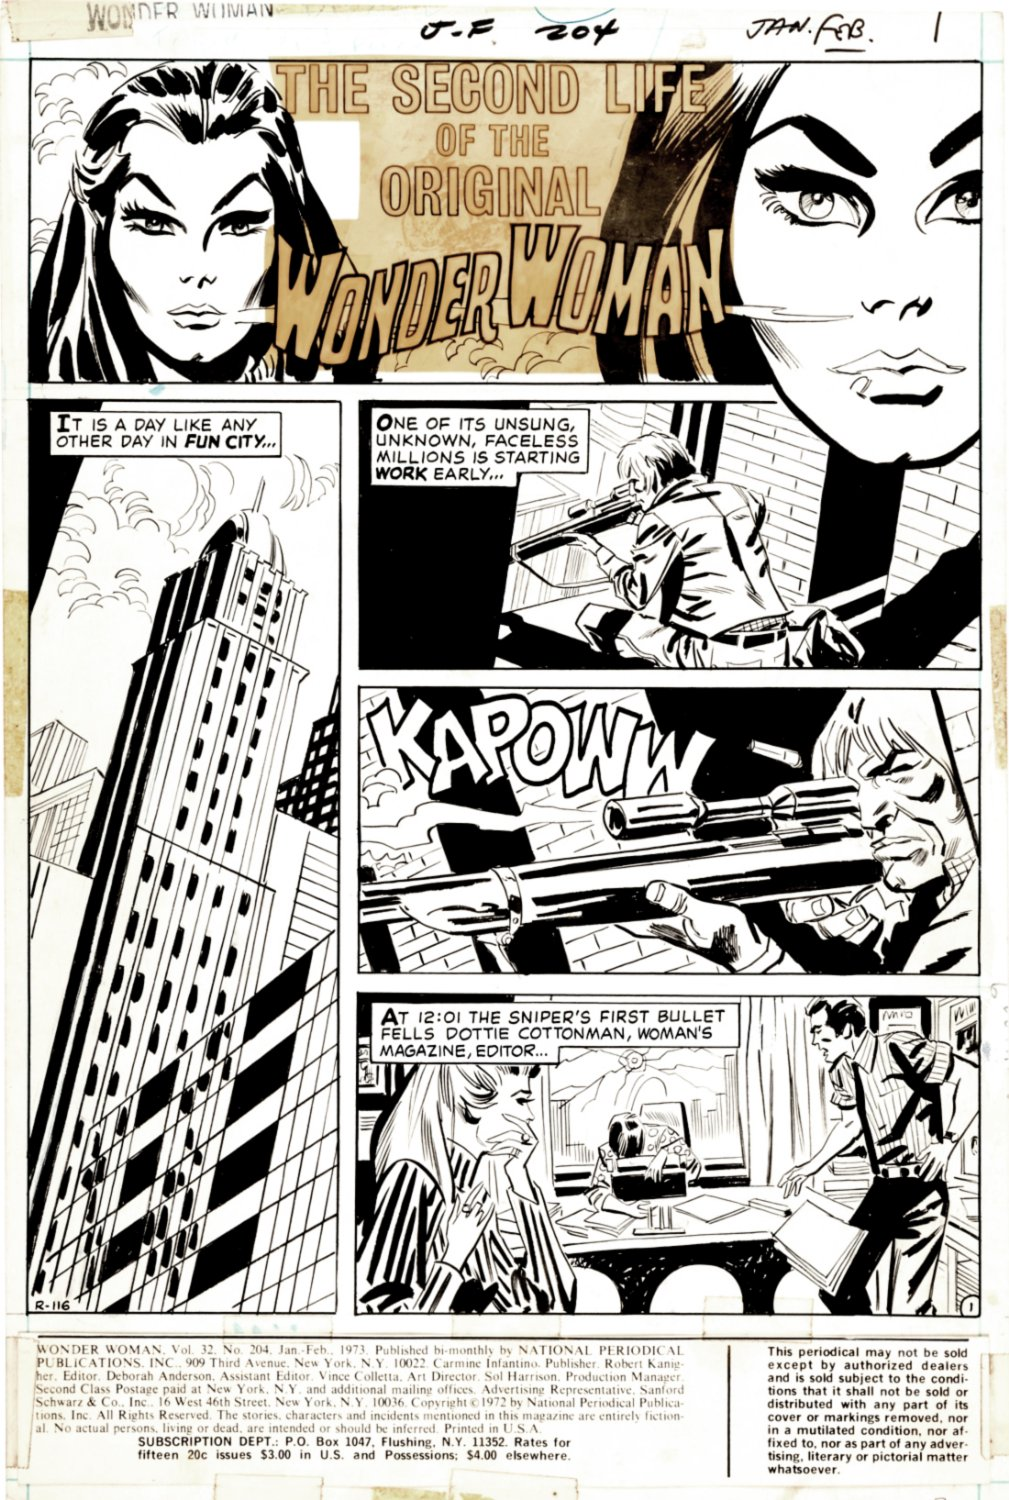 Wonder Woman #204 p 1 (SOLD LIVE ON 'DUELING DEALERS OF COMIC ART' EPISODE #39 PODCAST ON 10-4-2021(RE-WATCH THIS FUNNY ART SELLING SHOW HERE)